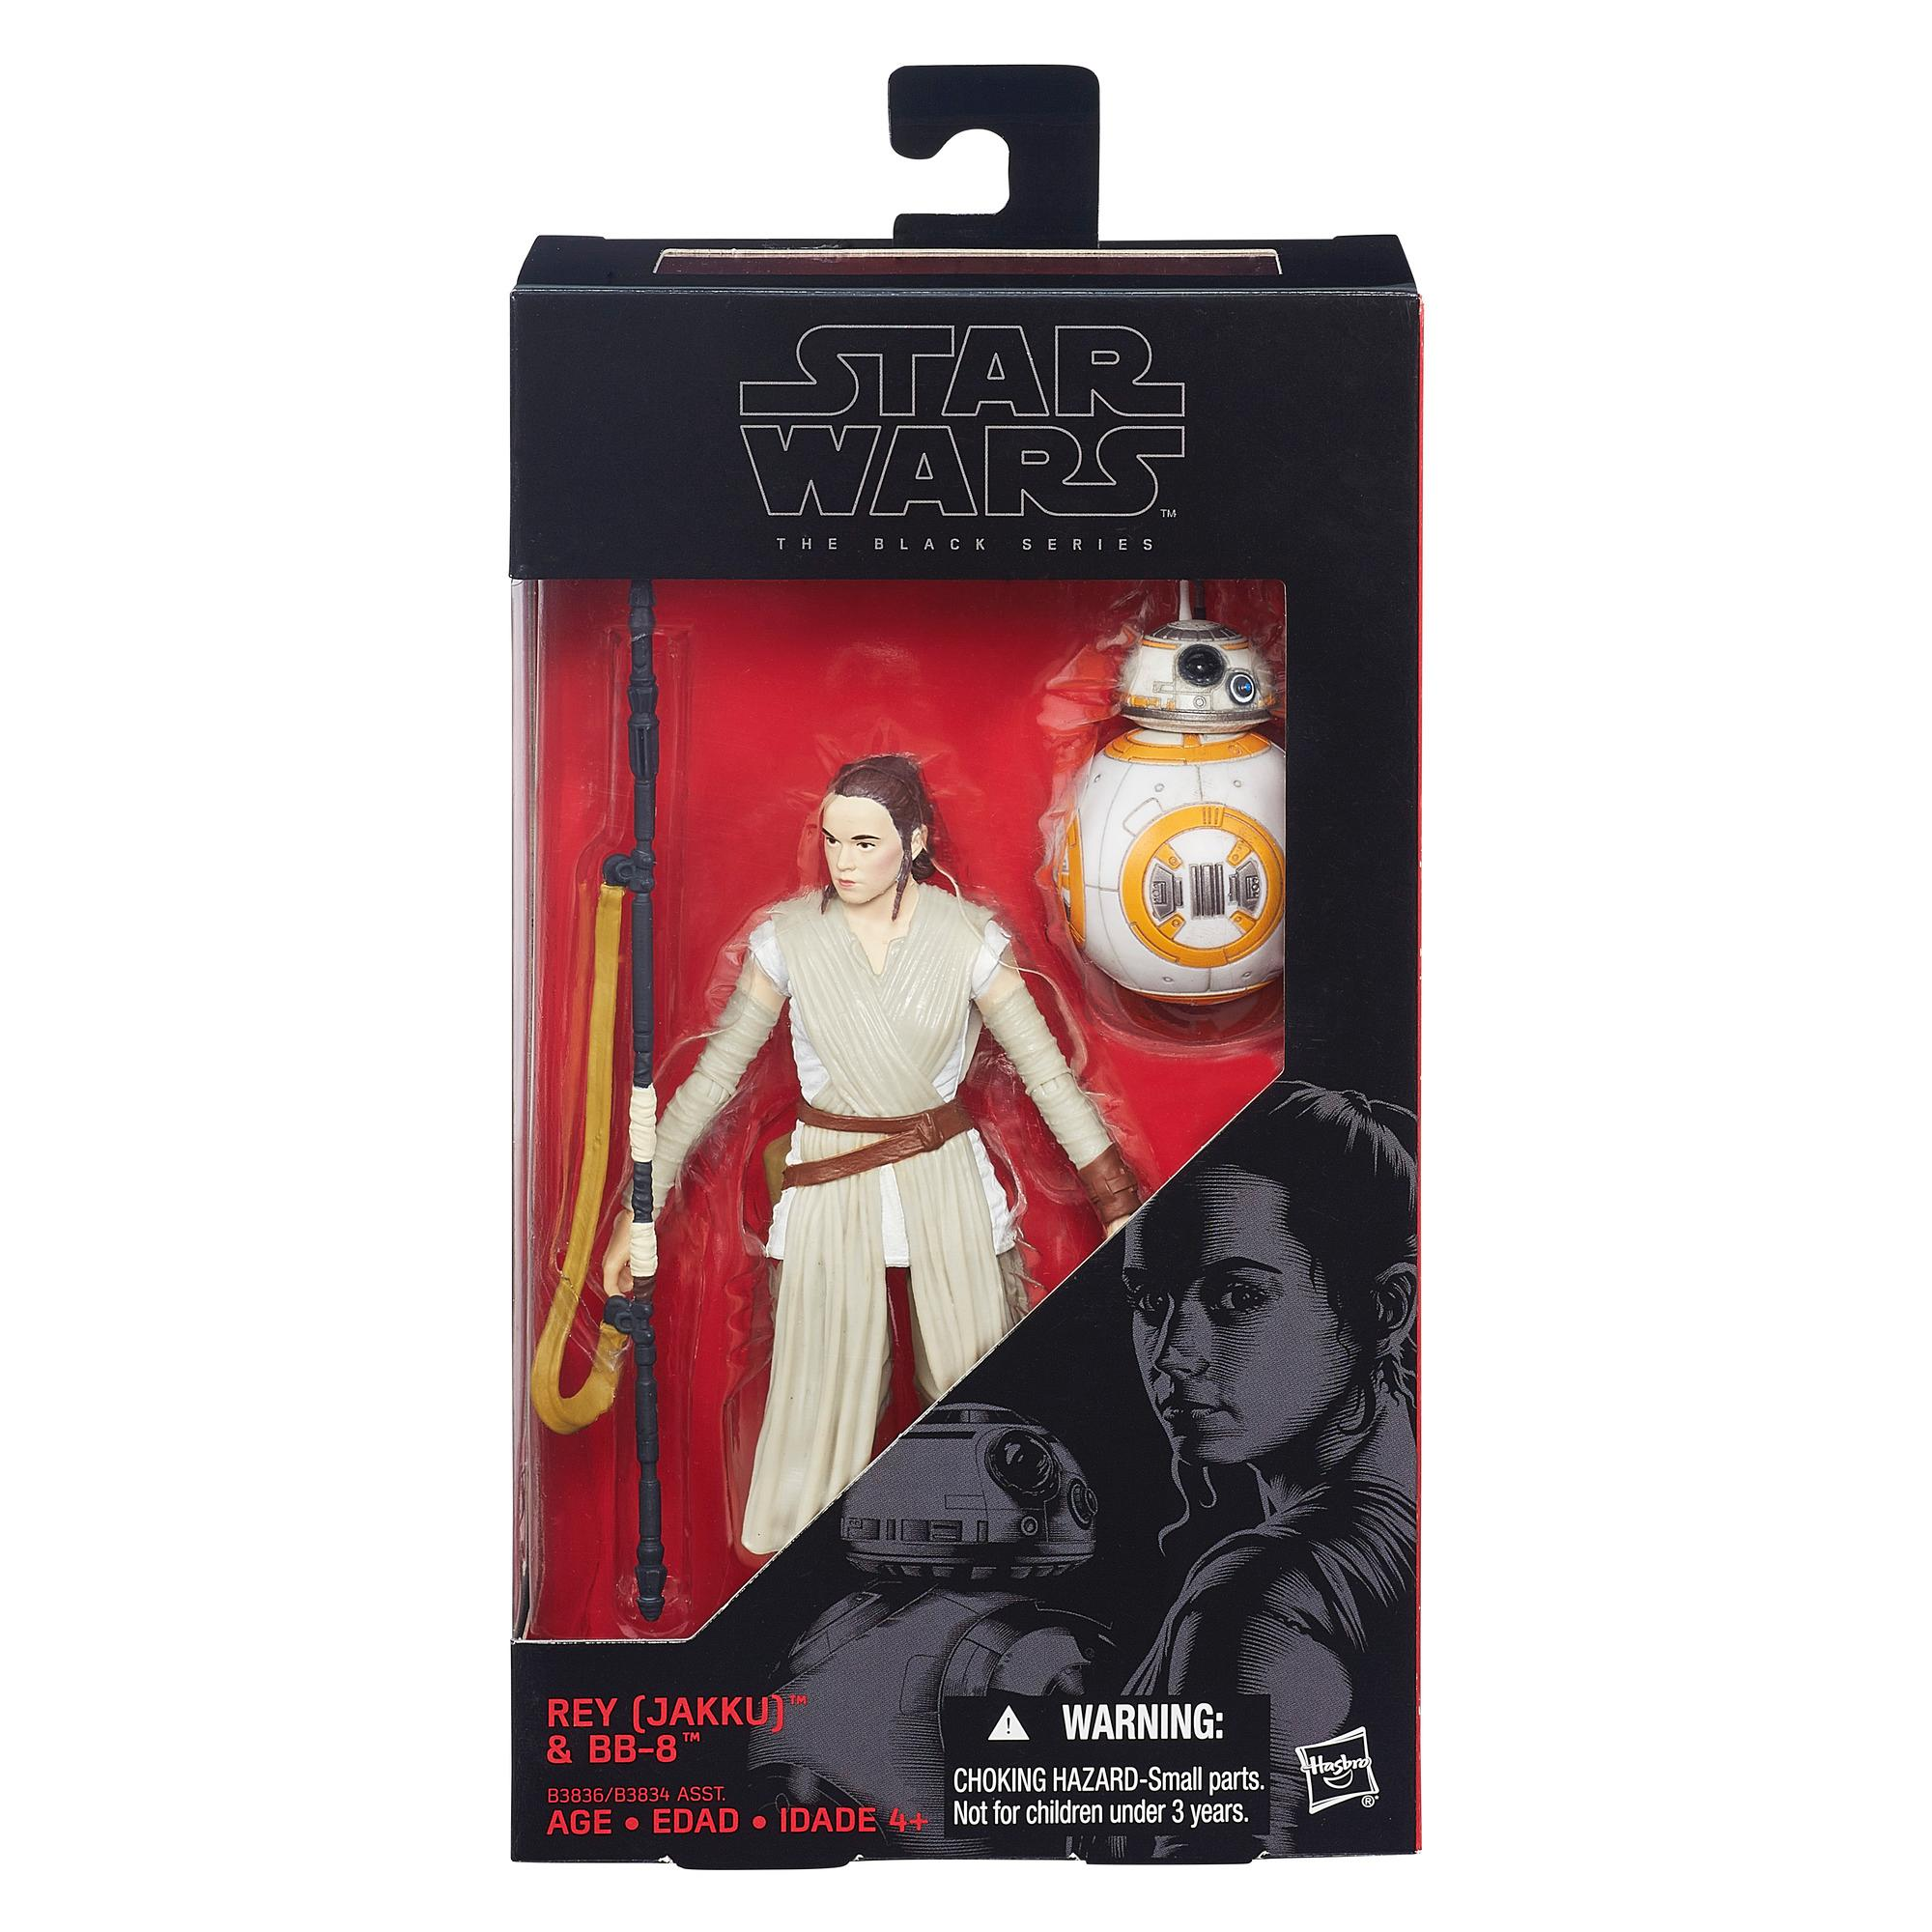 STAR WARS BLACK SERIES REY JAKKU Y BB-8  15 CM